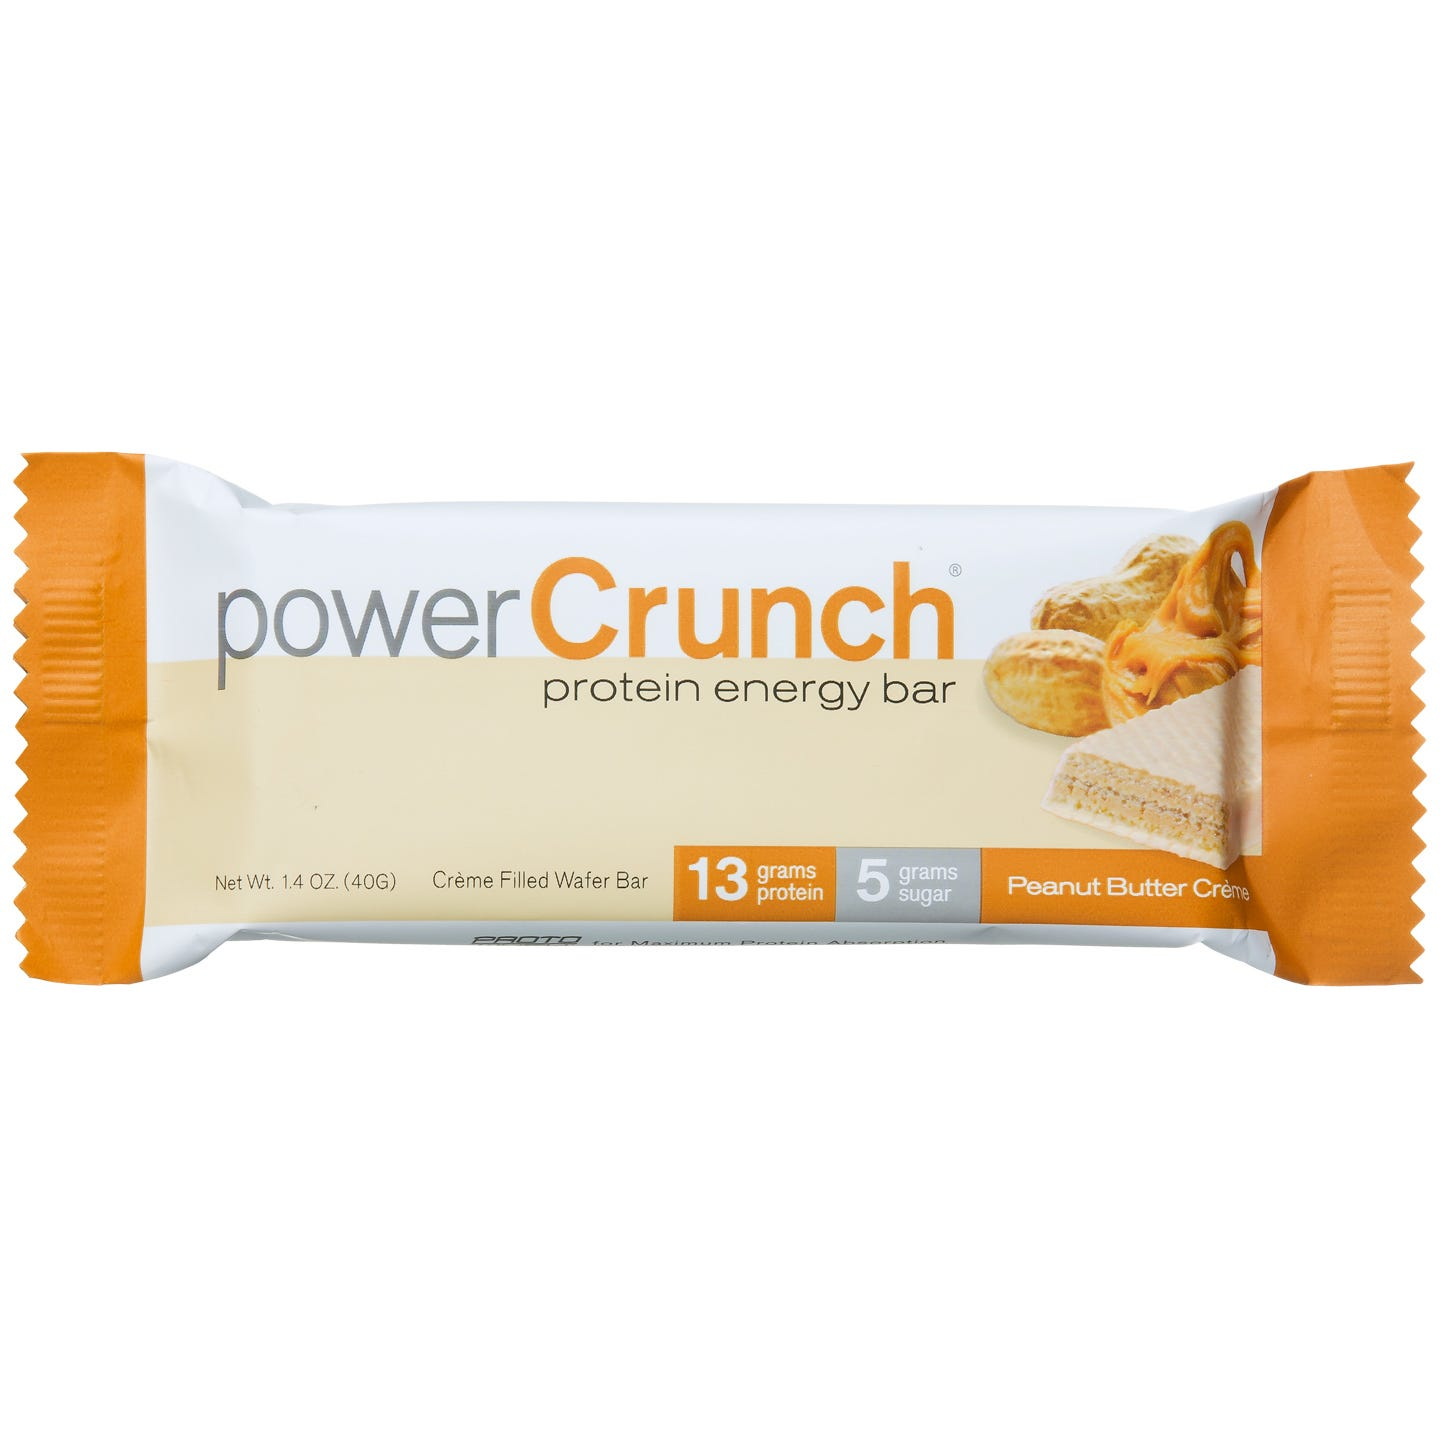 Power Crunch Protein Bars - Peanut Butter Creme